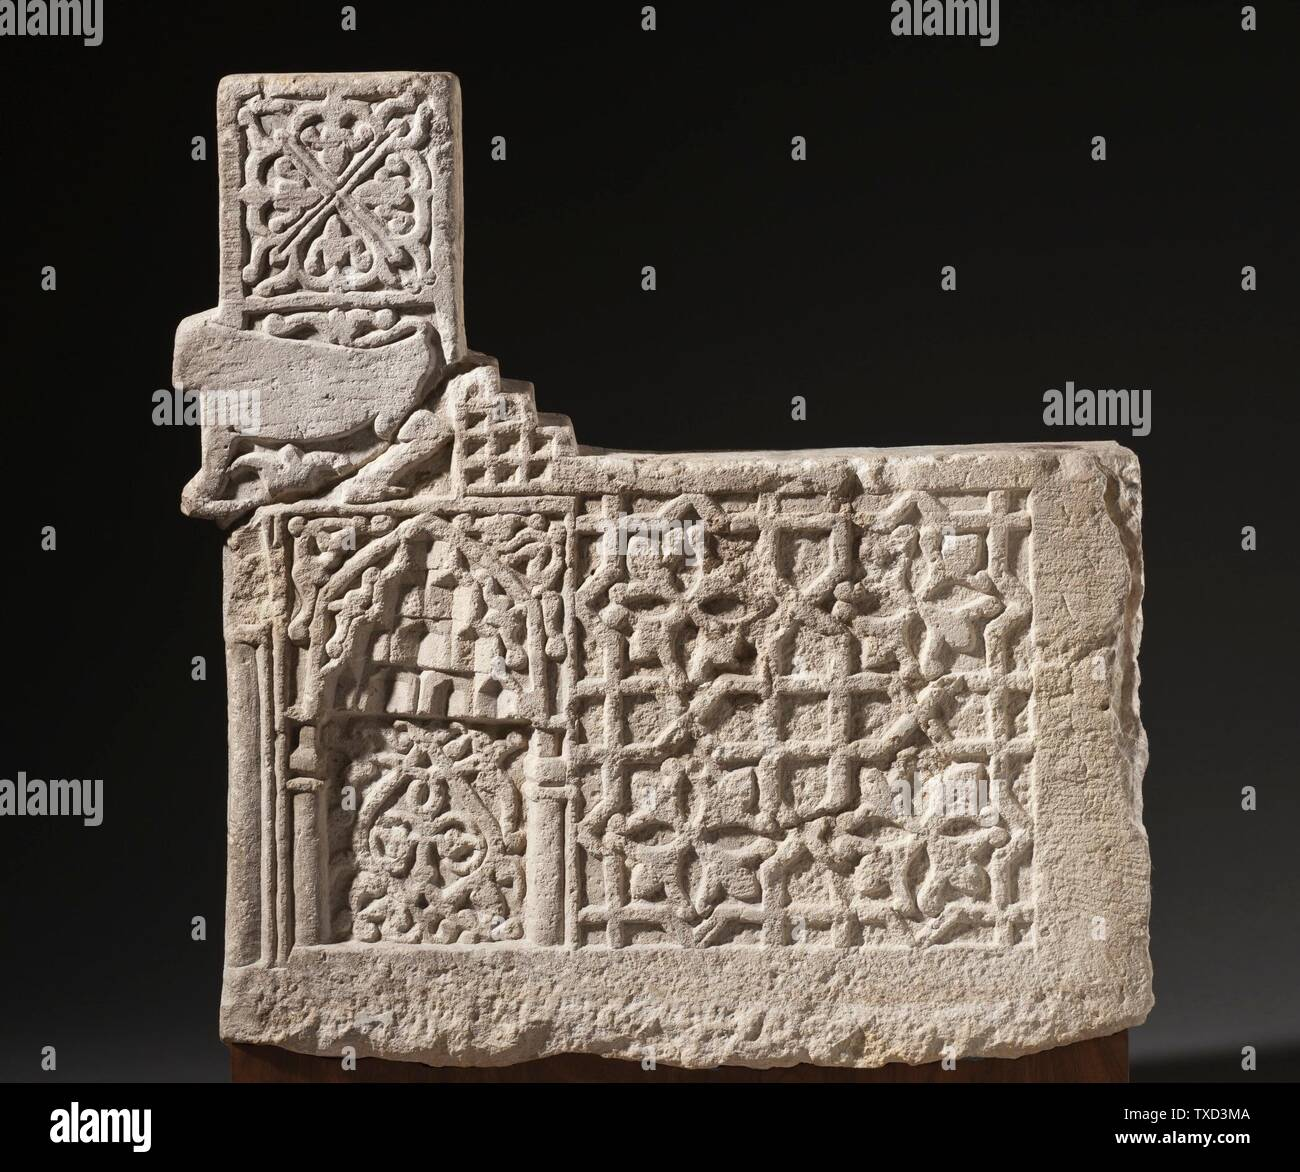 'Stair Riser (image 2 of 6); English:  Iran, 13th-early 14th century Architecture; Architectural Elements Limestone, carved The Nasli M. Heeramaneck Collection, gift of Joan Palevsky (M.73.5.5) Islamic Art Currently on public view: Ahmanson Building, floor 4; 13th-early 14th century; ' - Stock Image